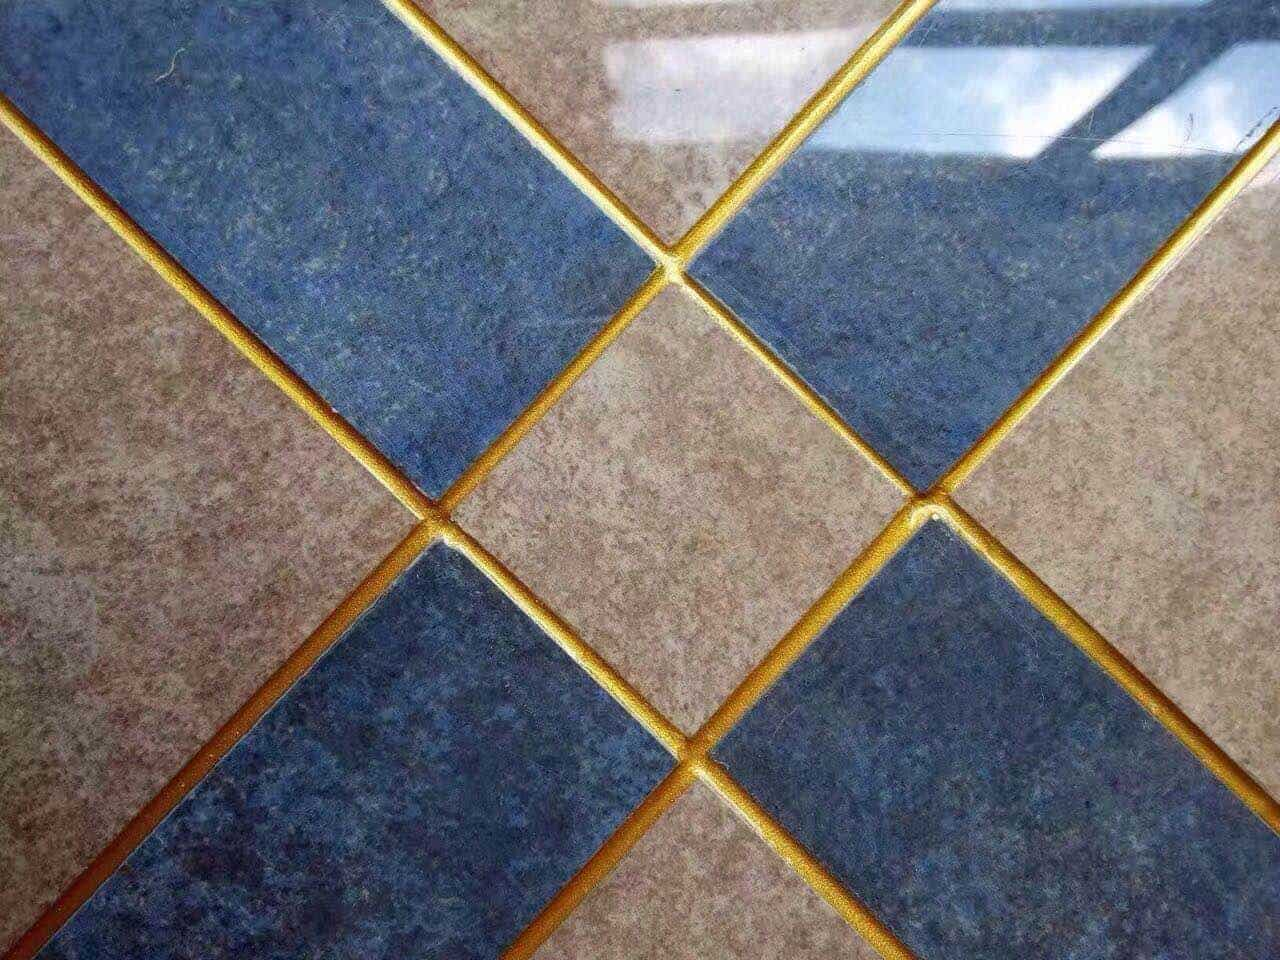 colourful Expoxy grout